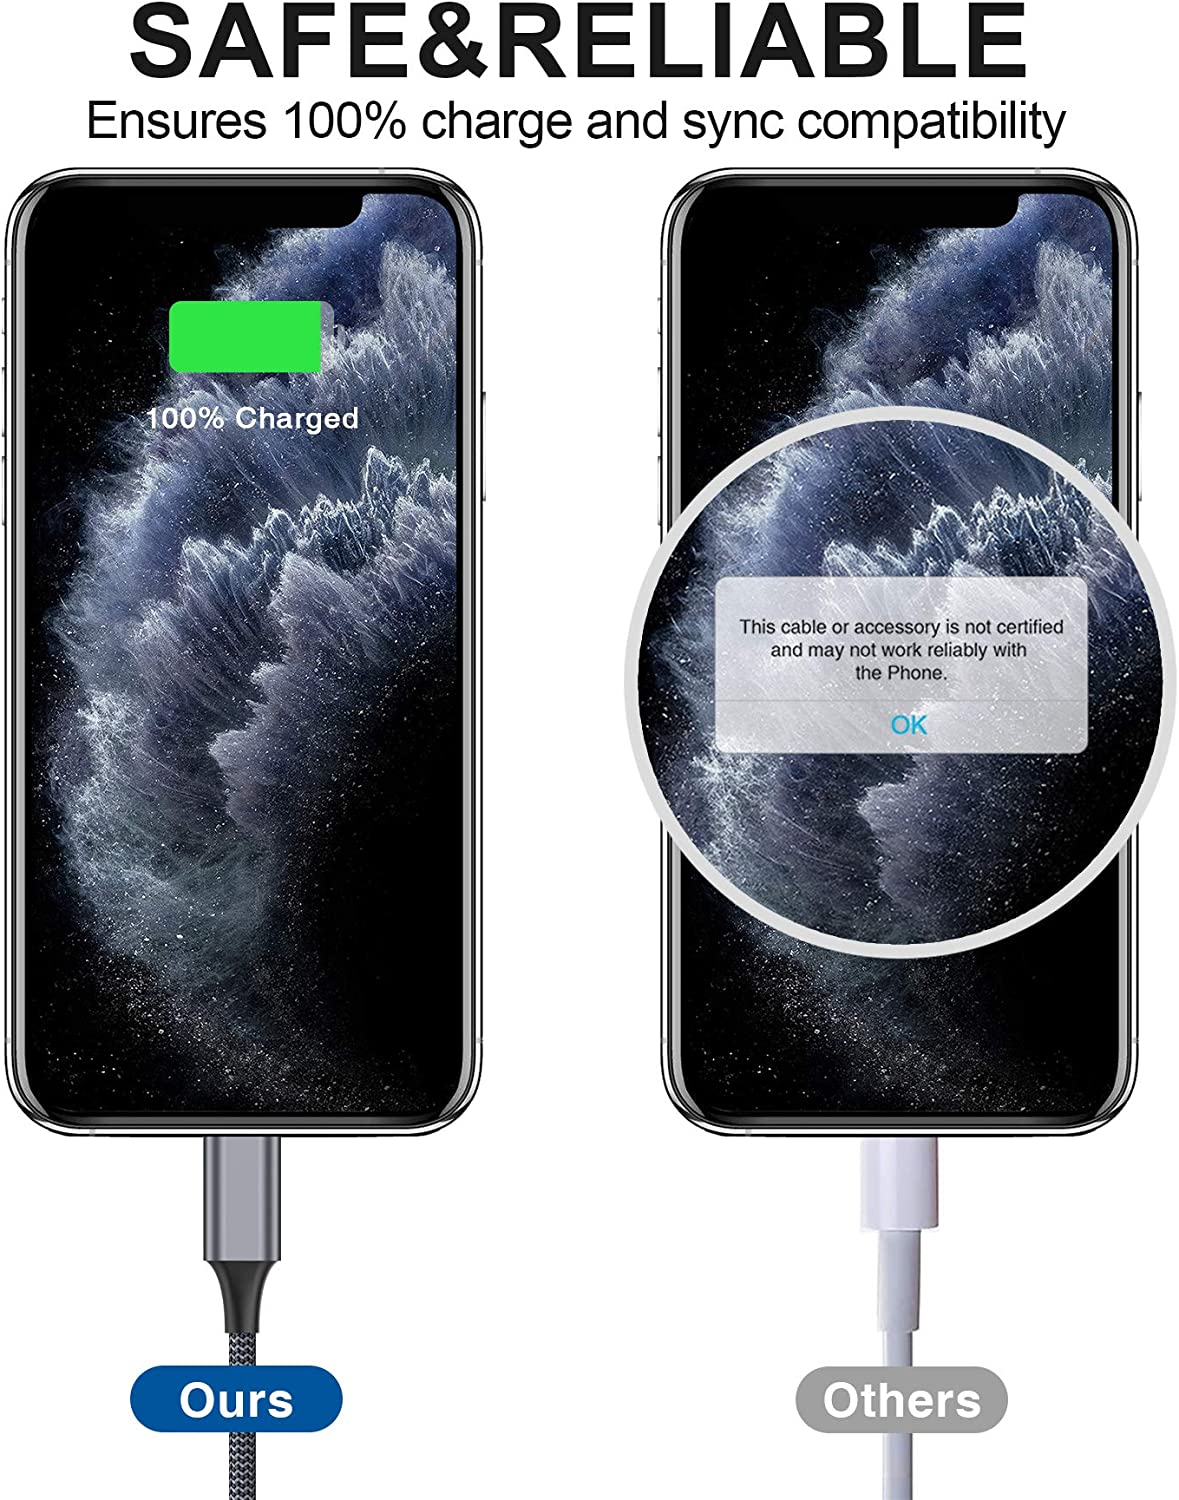 iPhone Charger Cable Lightning Cable 4Pack 0.3M 1M 2M 3M iPhone Charger Nylon Braided Fast iPhone Charging Cable Lead for iPhone 11 Pro Max XR XS X 8 Plus 7 Plus 6s Plus 6 Plus 5s 5 SE 2020 iPad